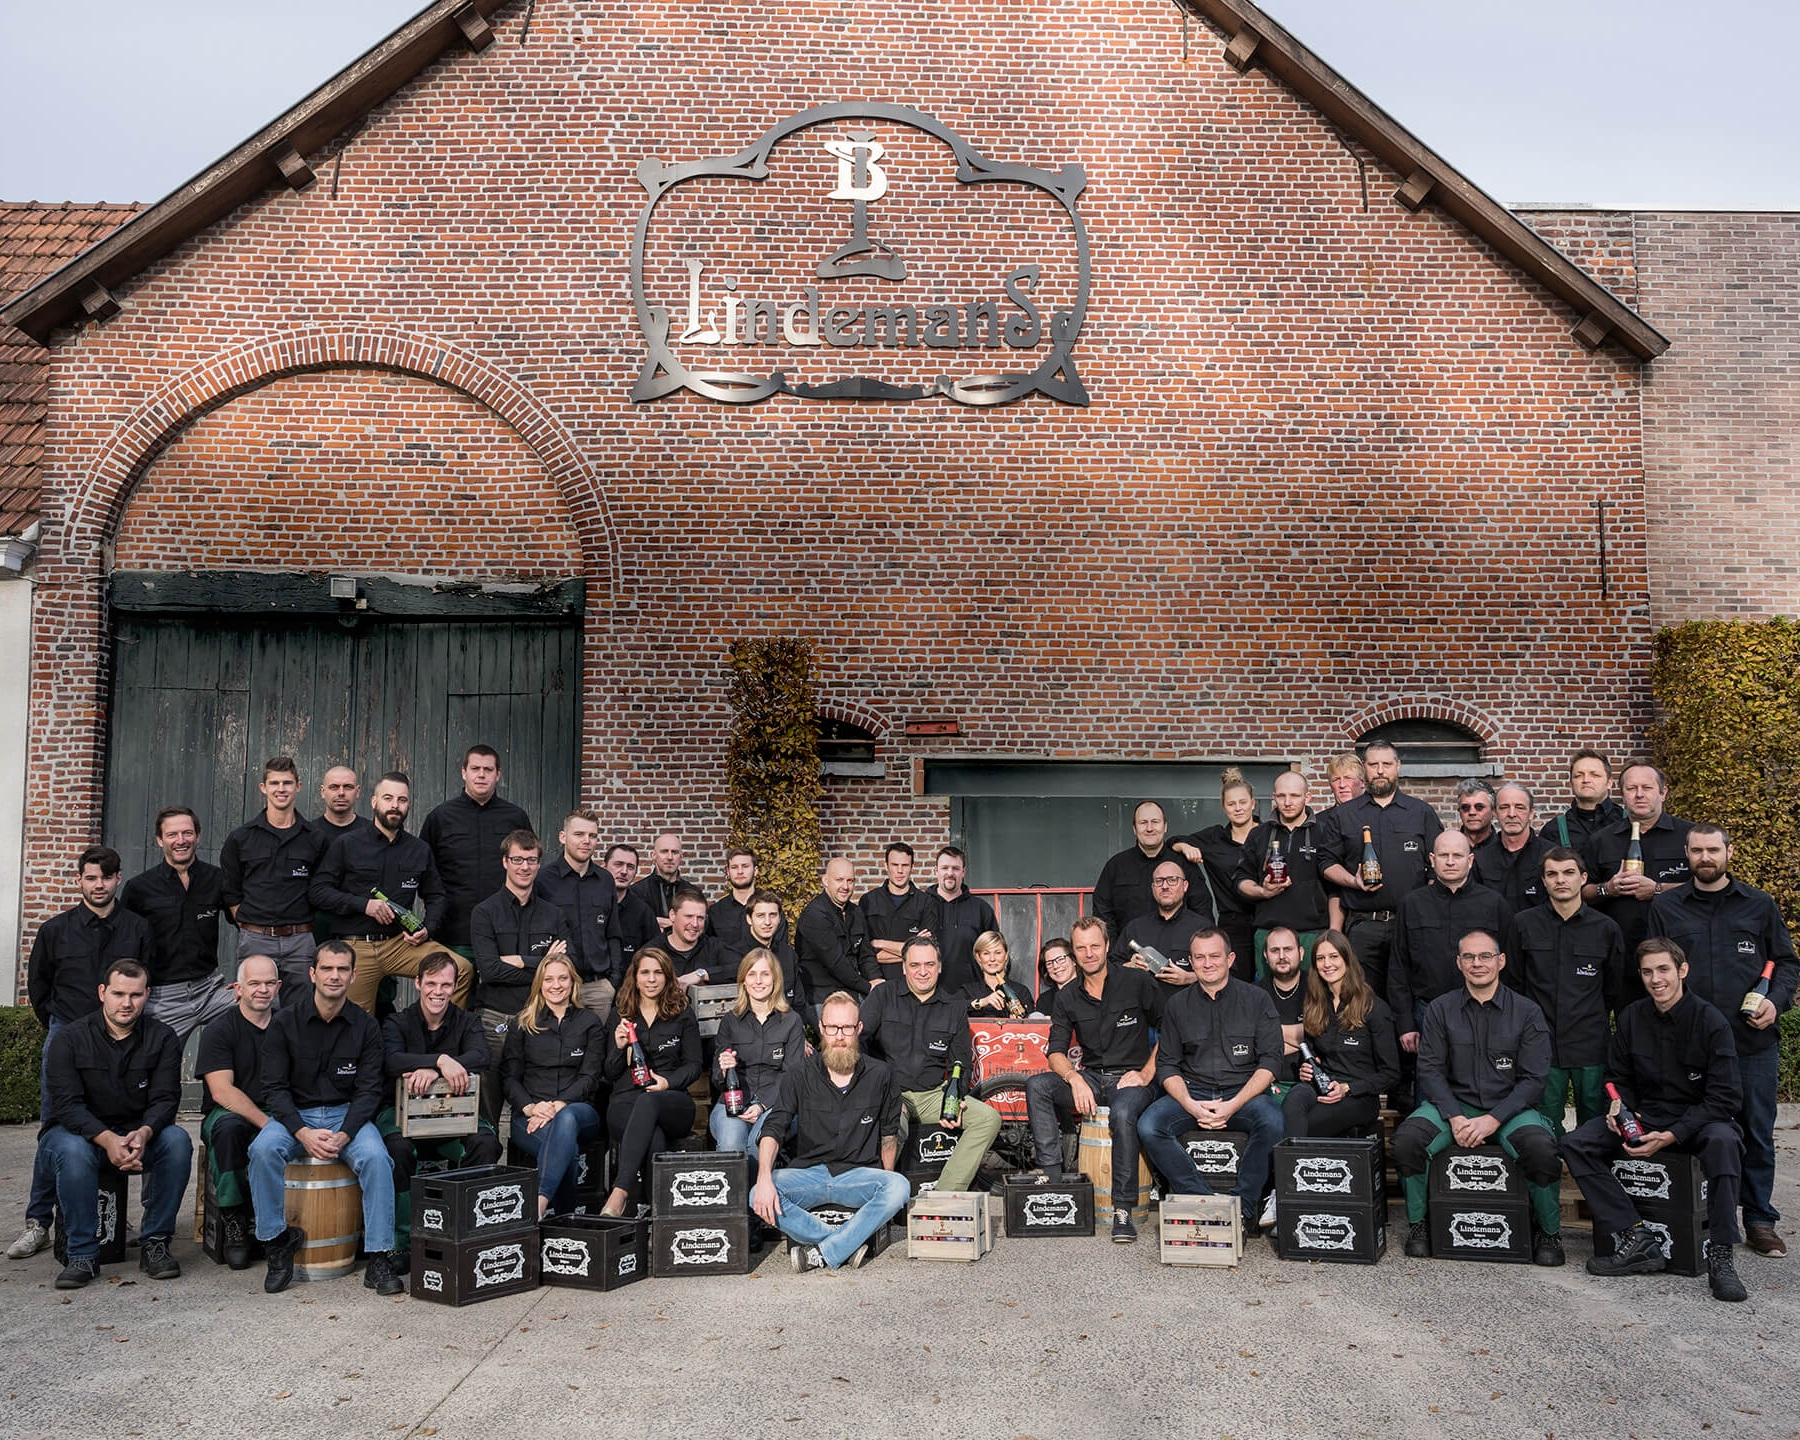 The extended Lindemans family - the brewery's team of employees